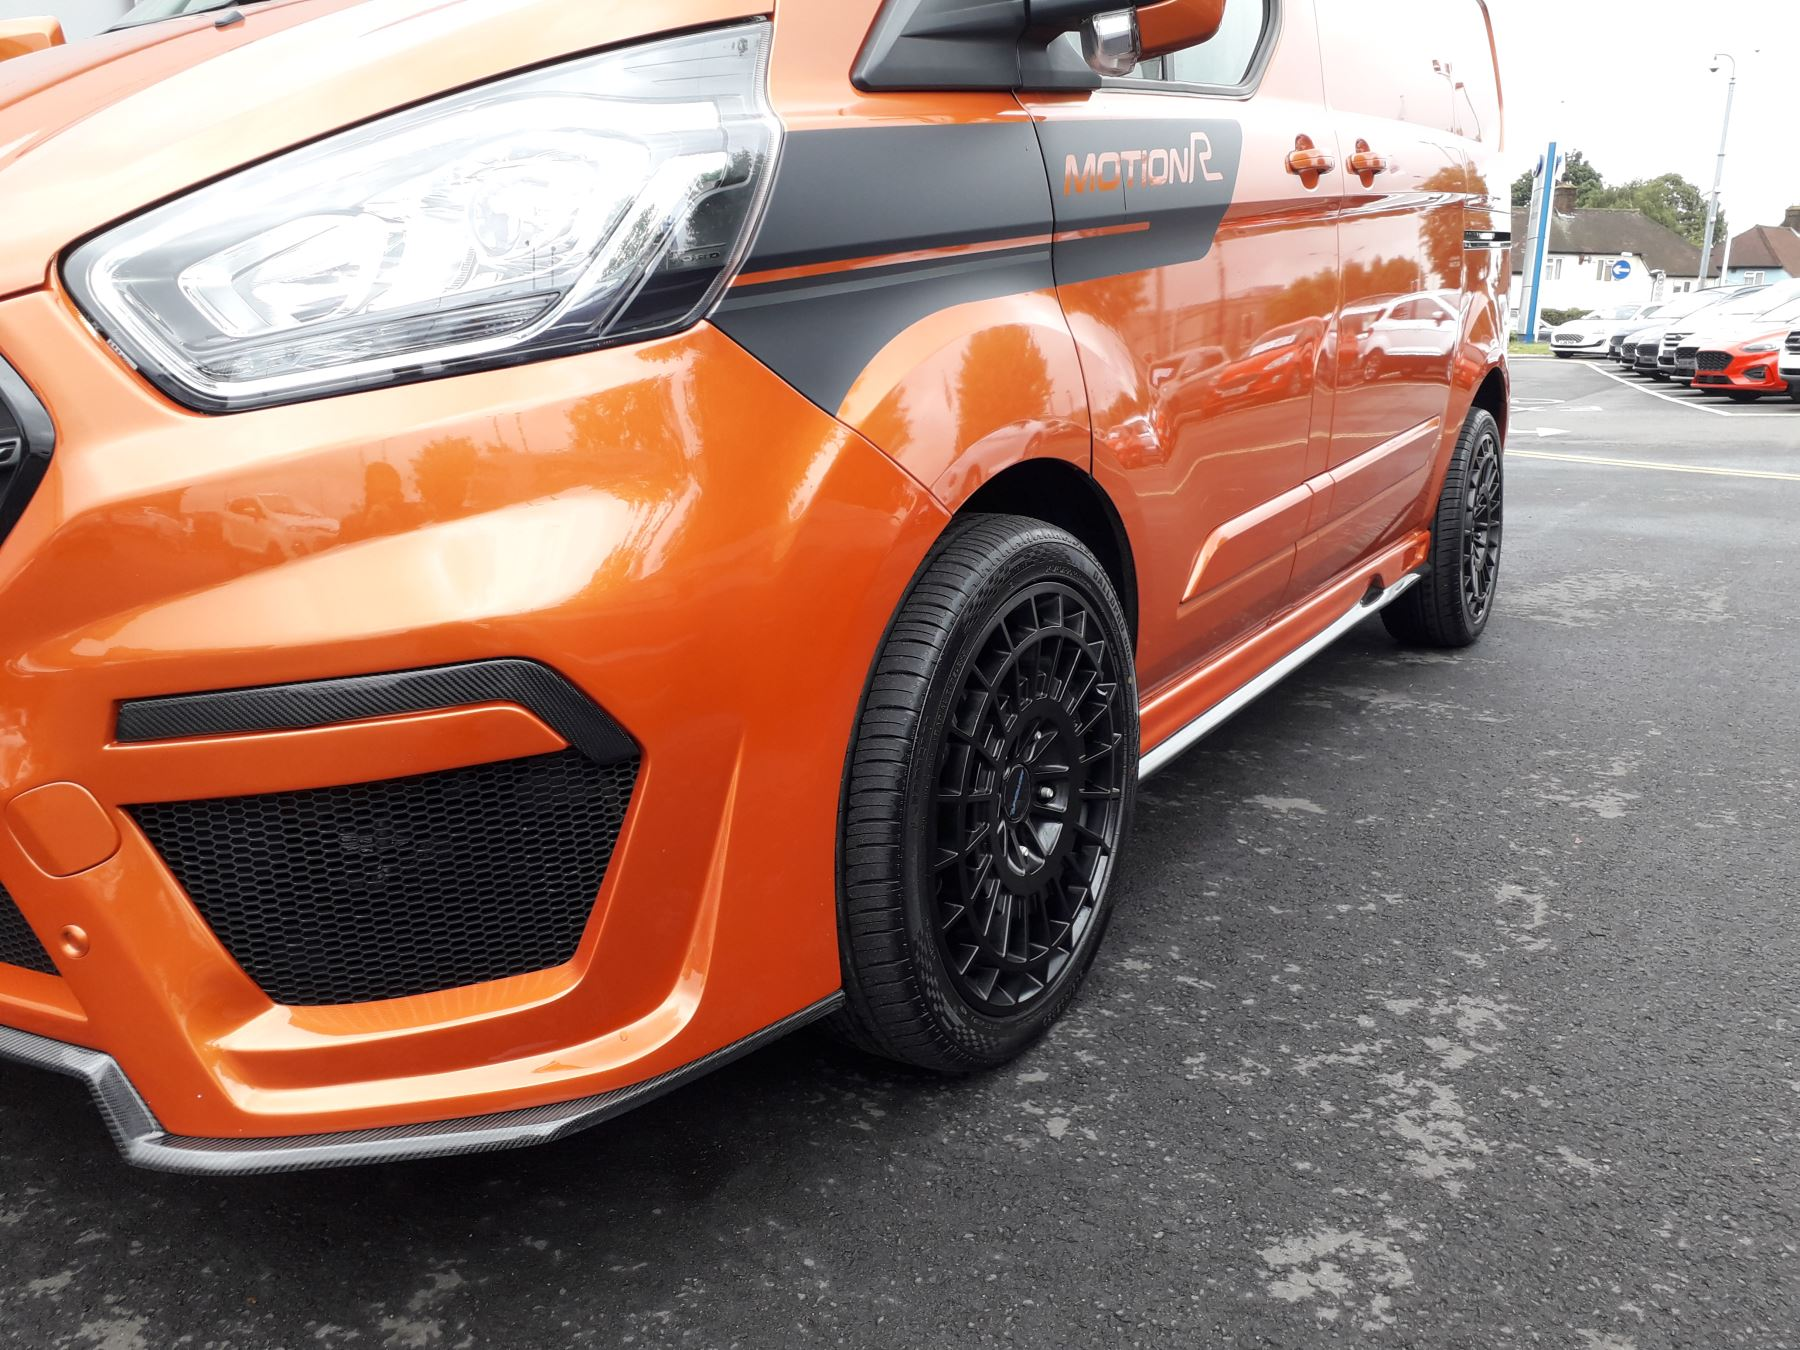 Ford Transit Custom 280 L1 Motion R 130PS Euro 6 image 18